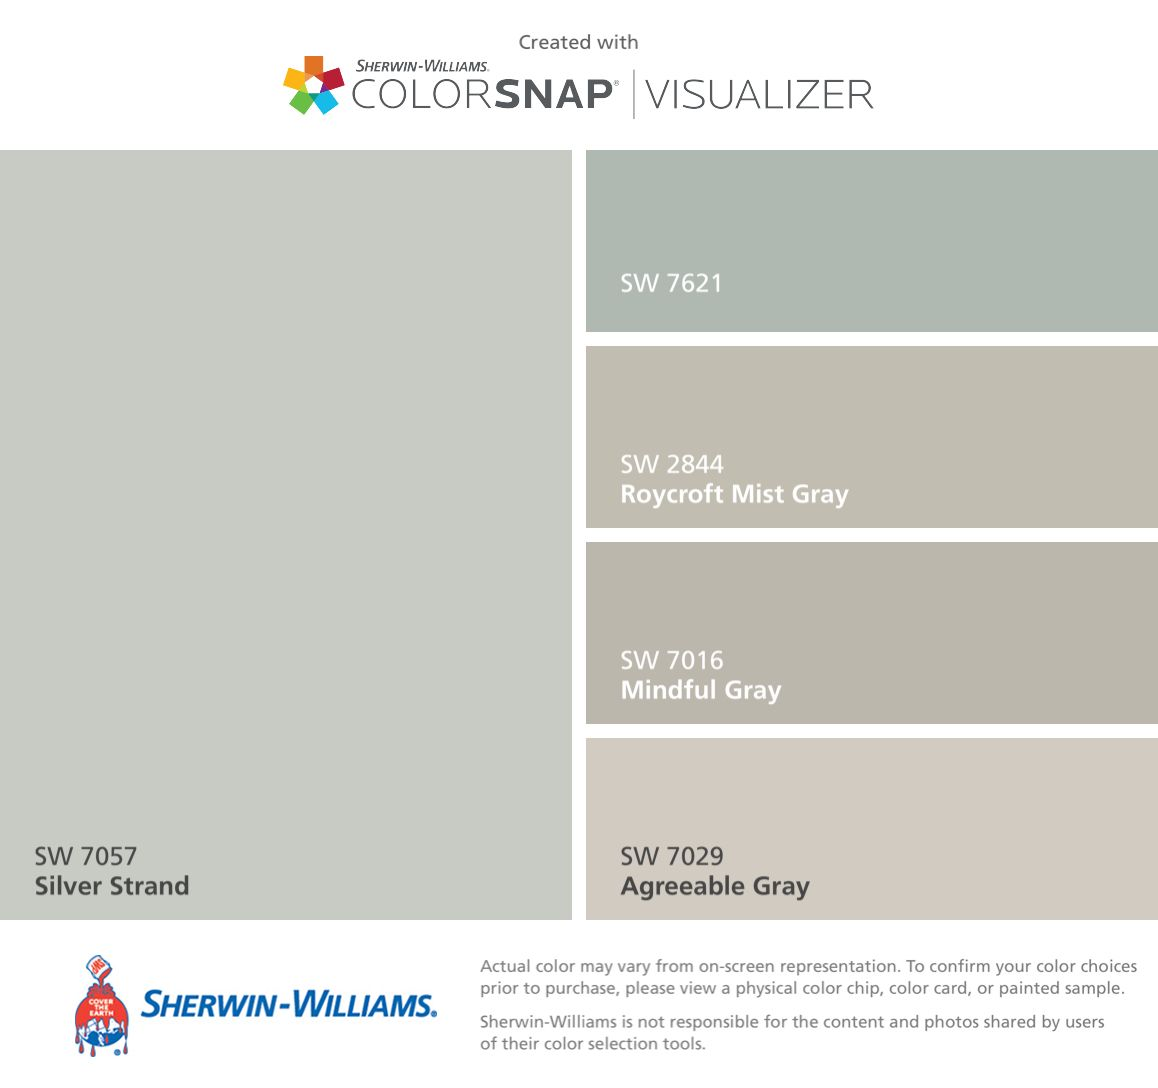 I Found These Colors With Colorsnap Visualizer For Iphone By Sherwin Williams Silver Strand Sw 7057 Paint Colors For Home Matching Paint Colors House Colors